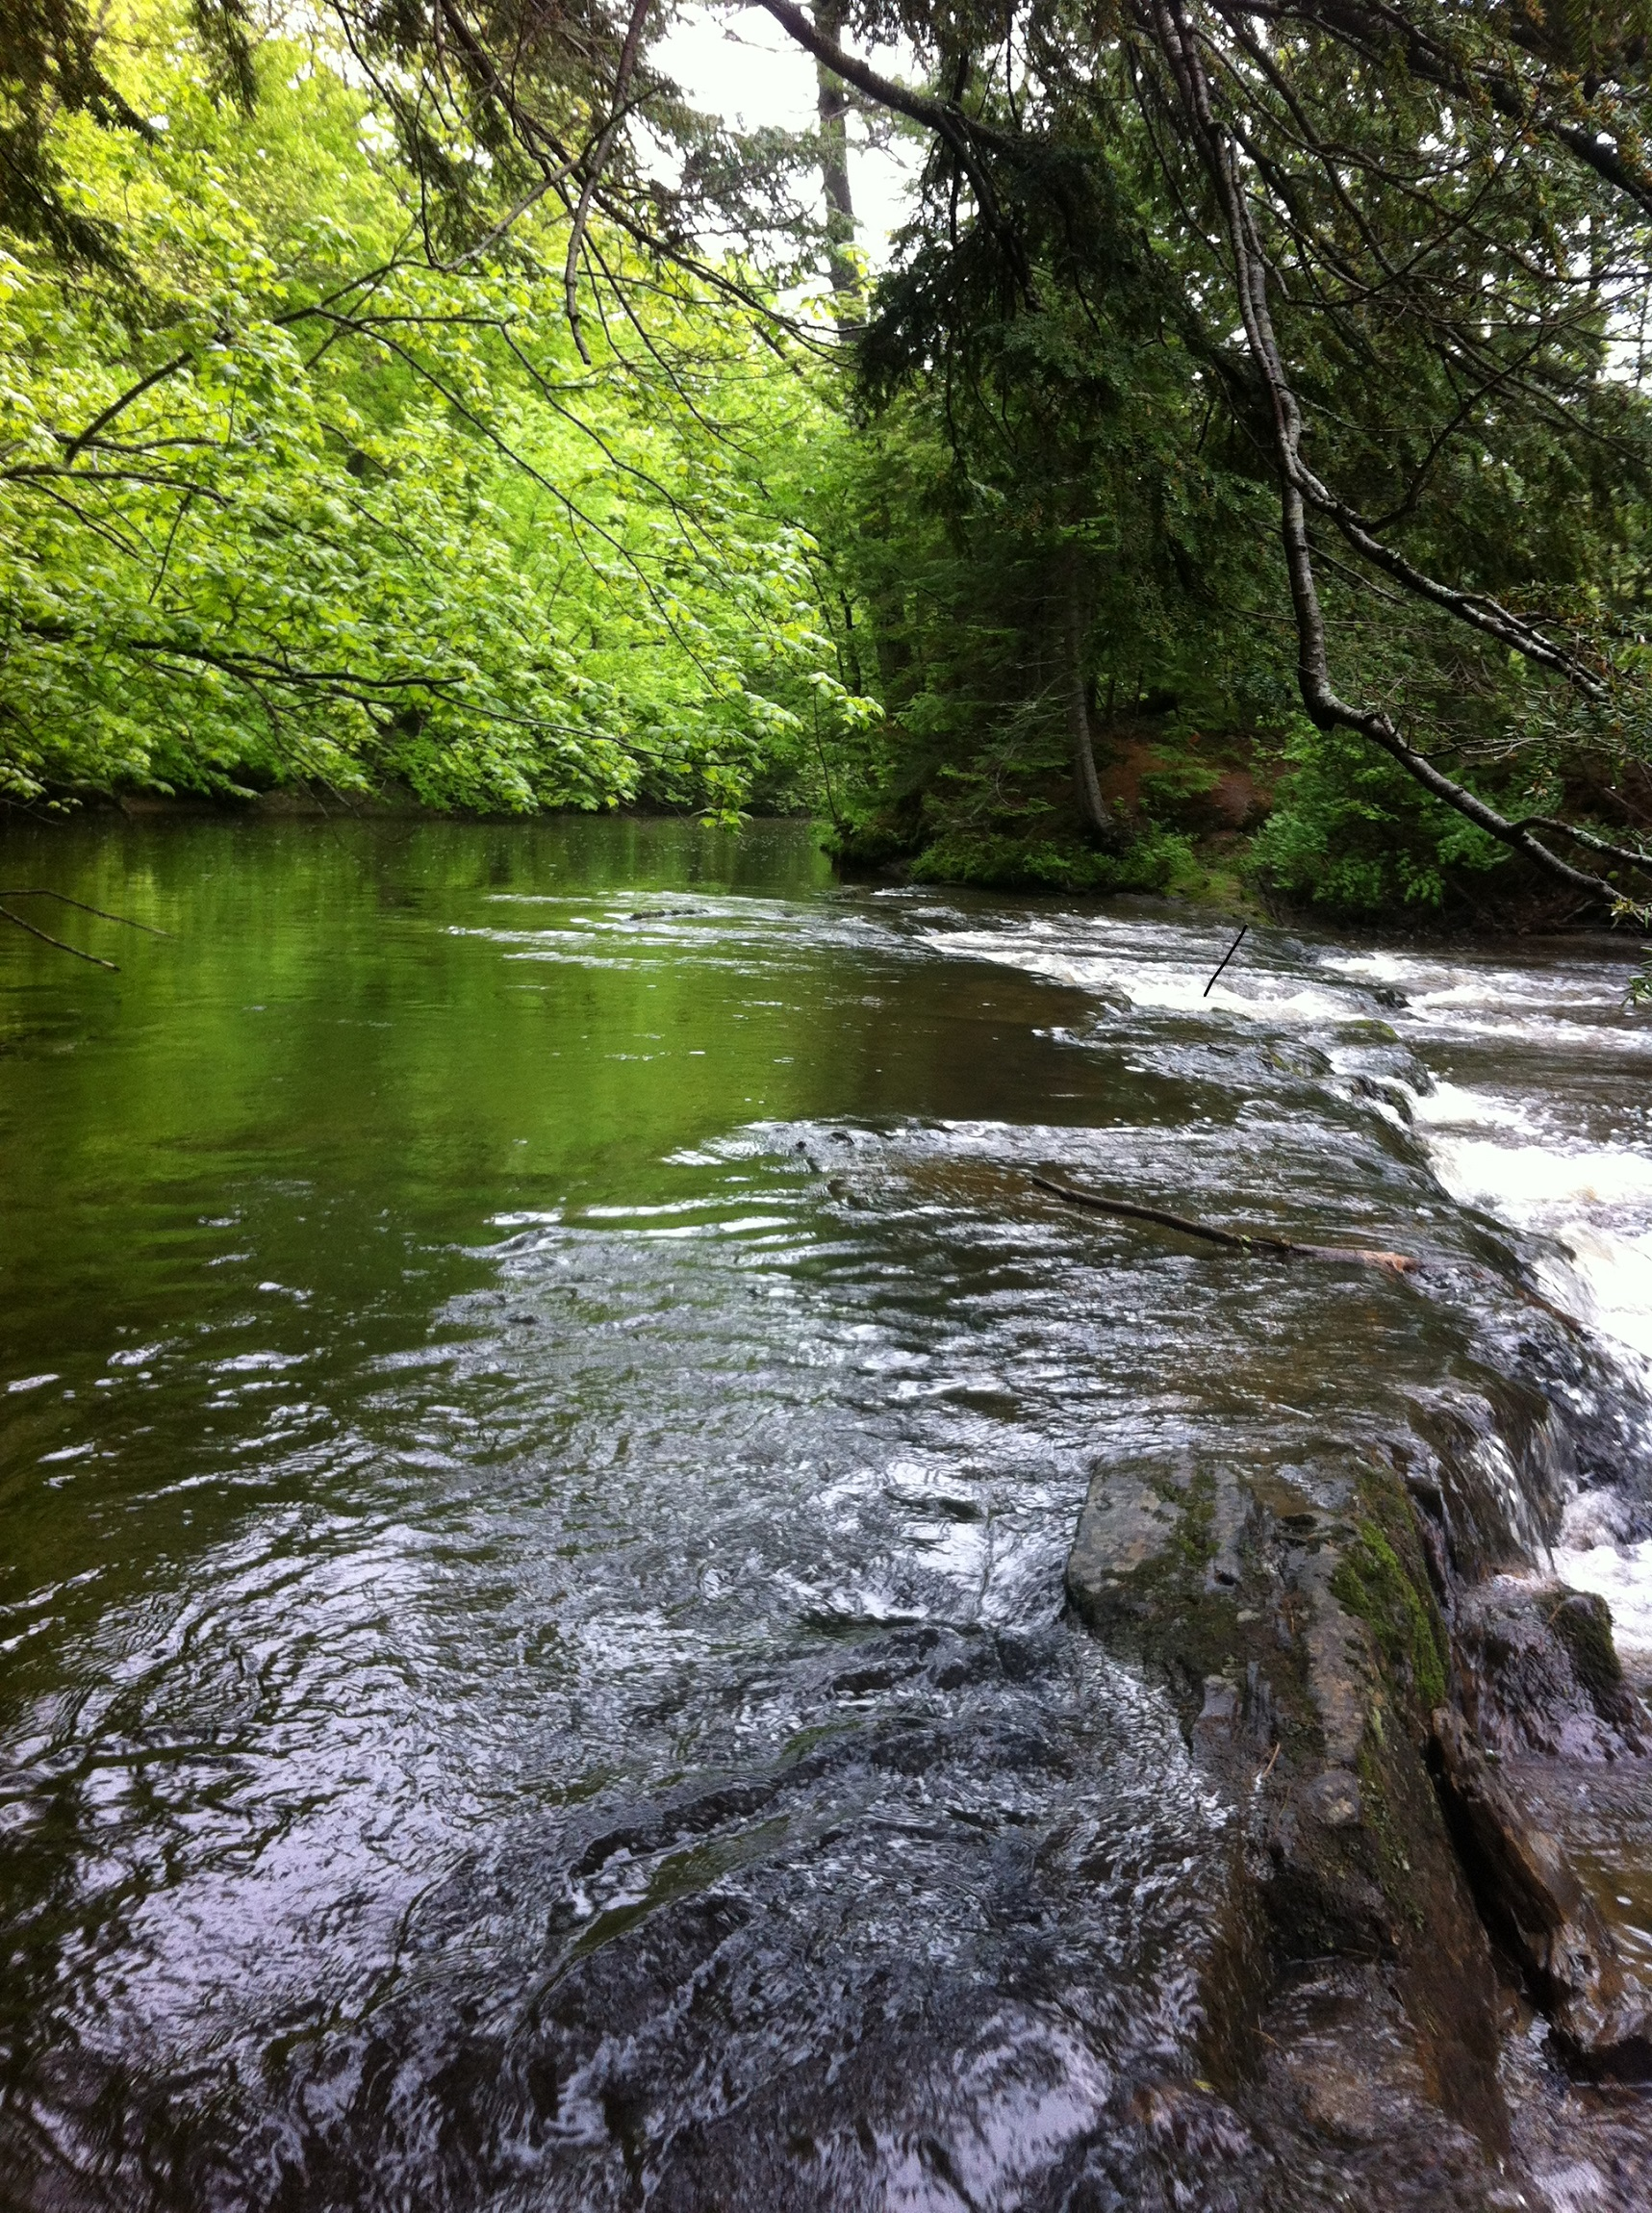 Trout fishing on the pleasant river windham maine may for Fish stocking near me